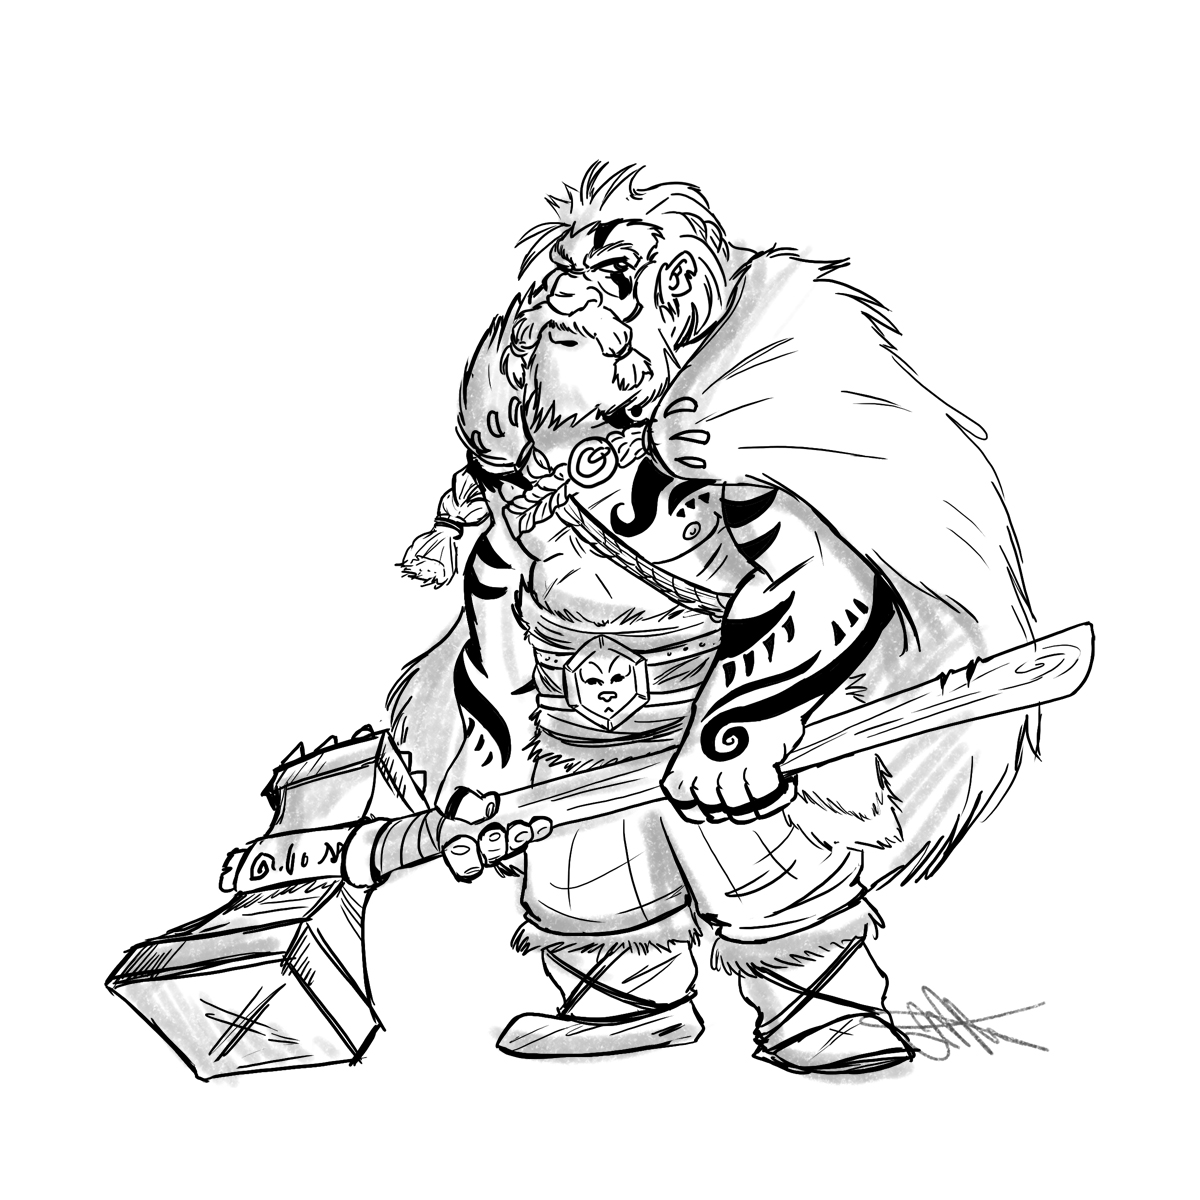 Drawn dwarf bad By Album /u/Fancymancer on Barbarian